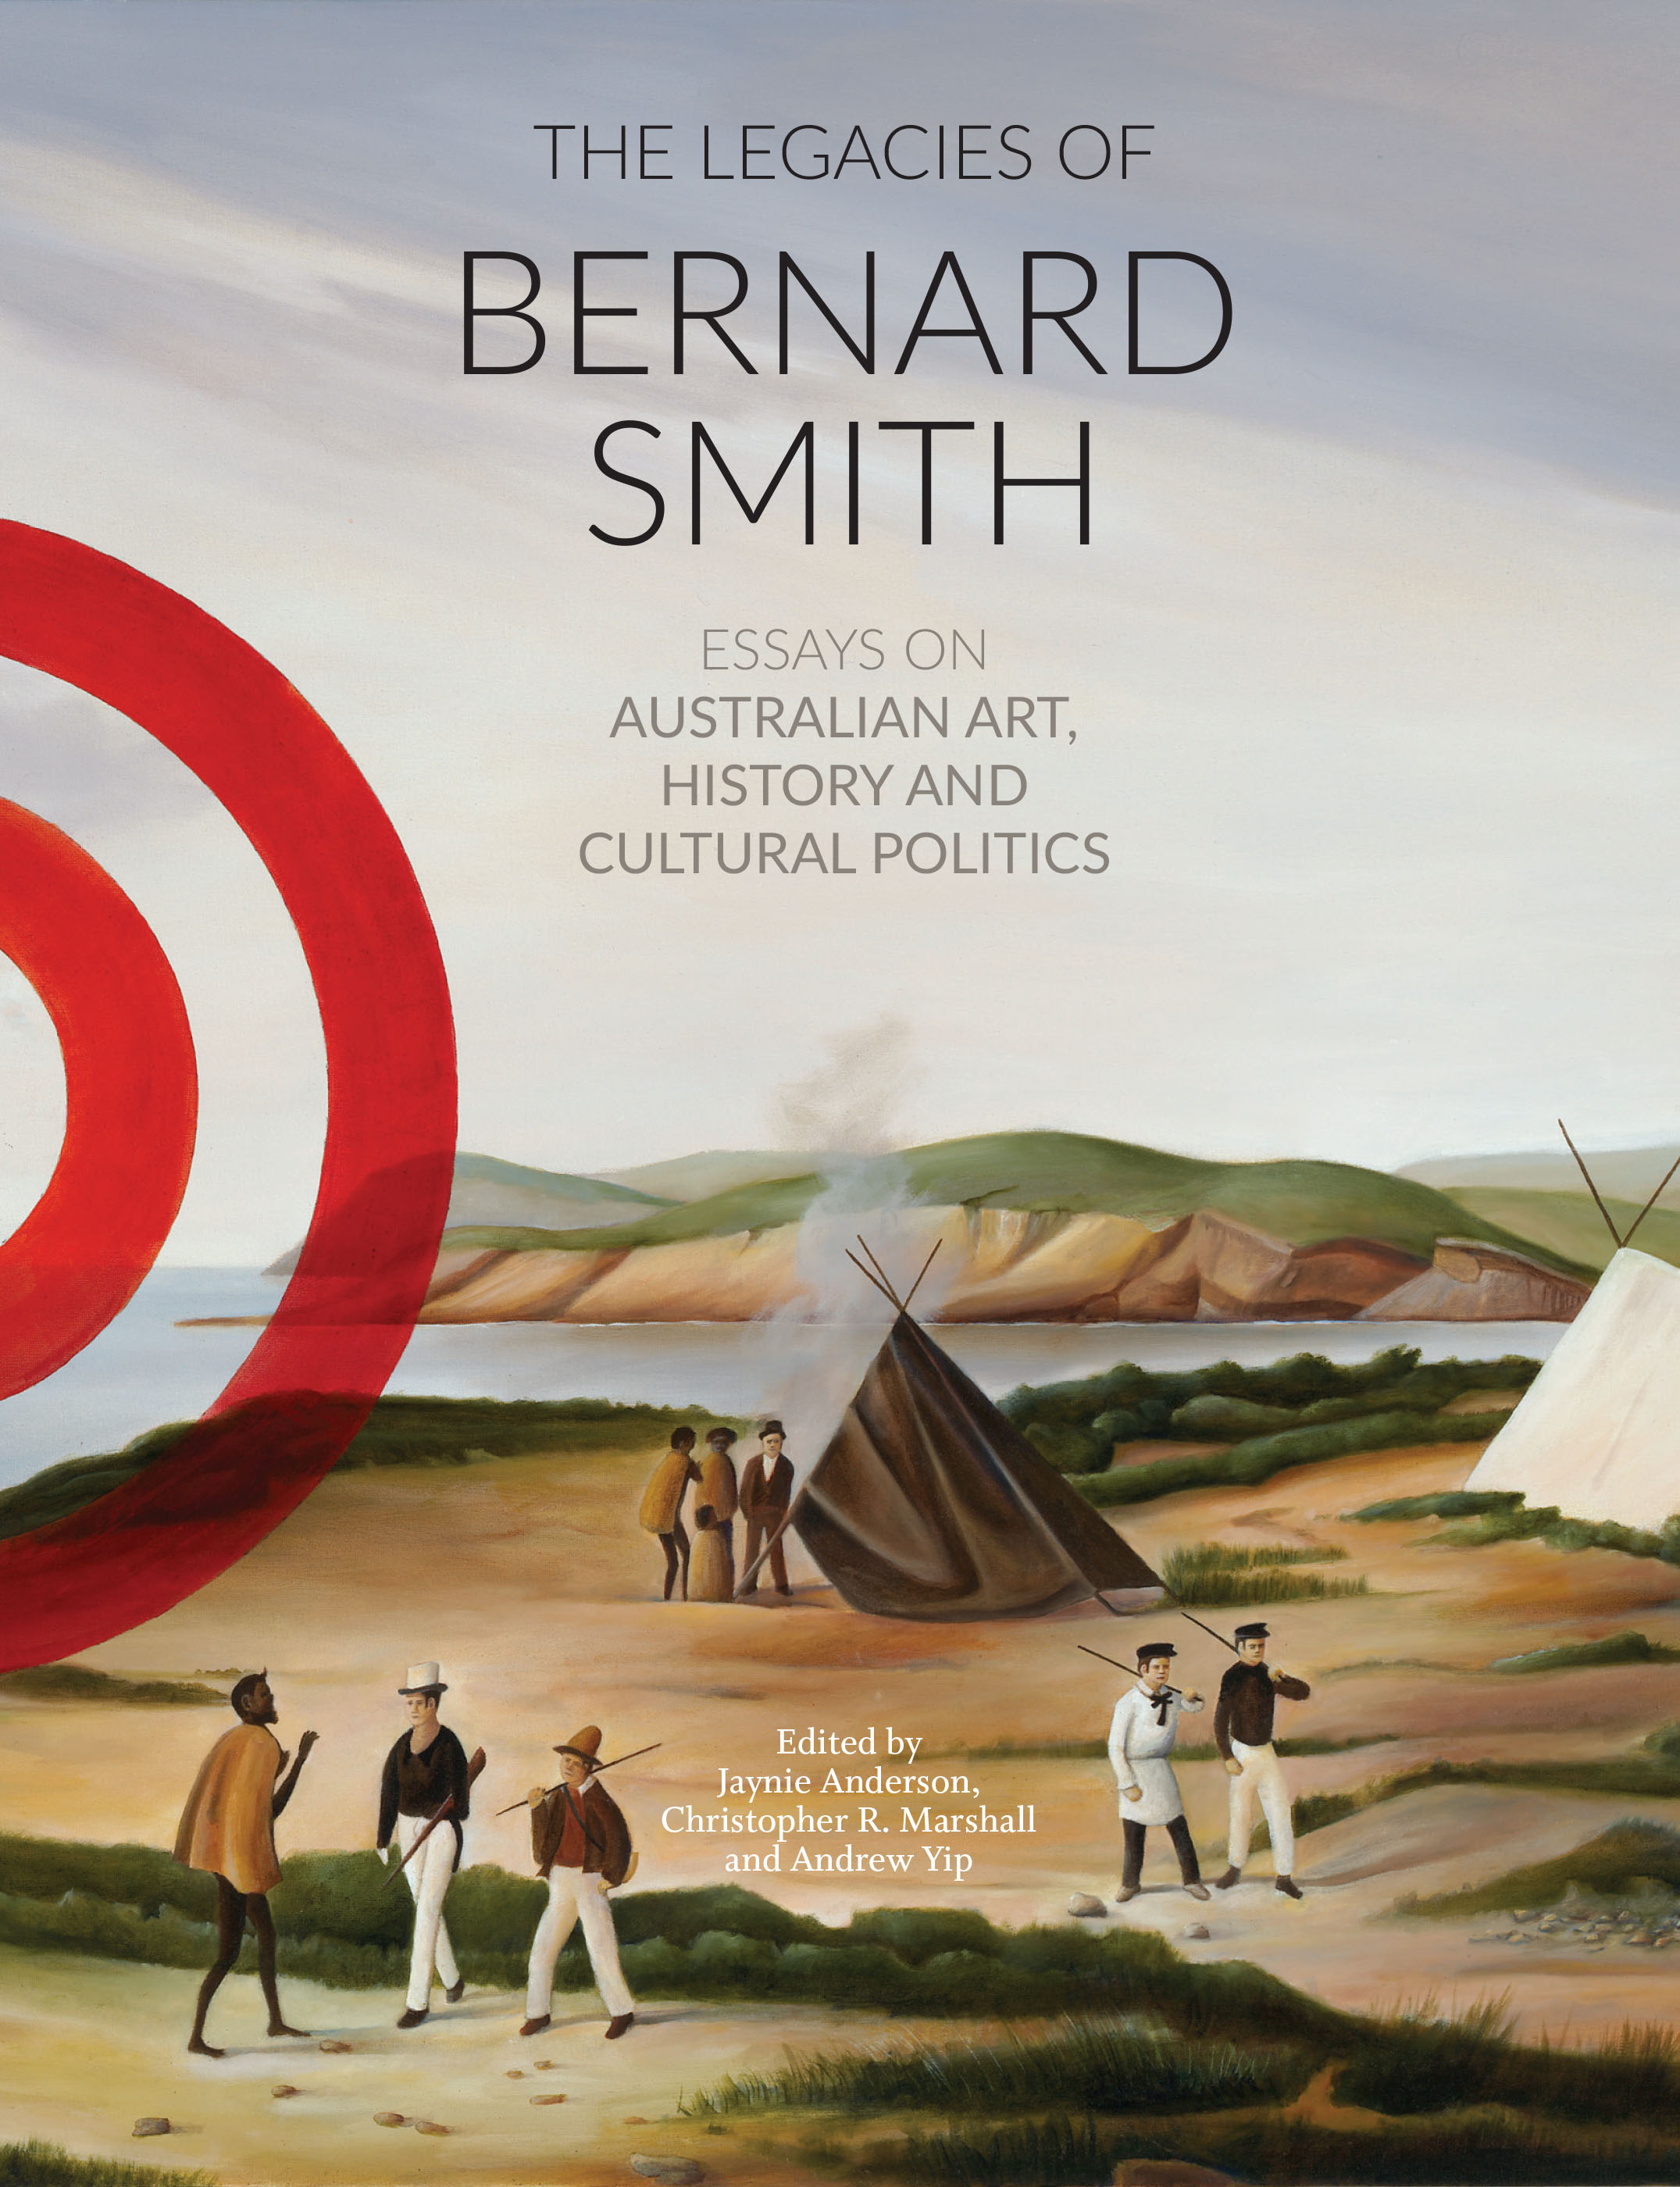 the legacies of bernard smith newsouth books it has been widely asserted that bernard smith established the discipline of art history in he was the founding professor of contemporary art and